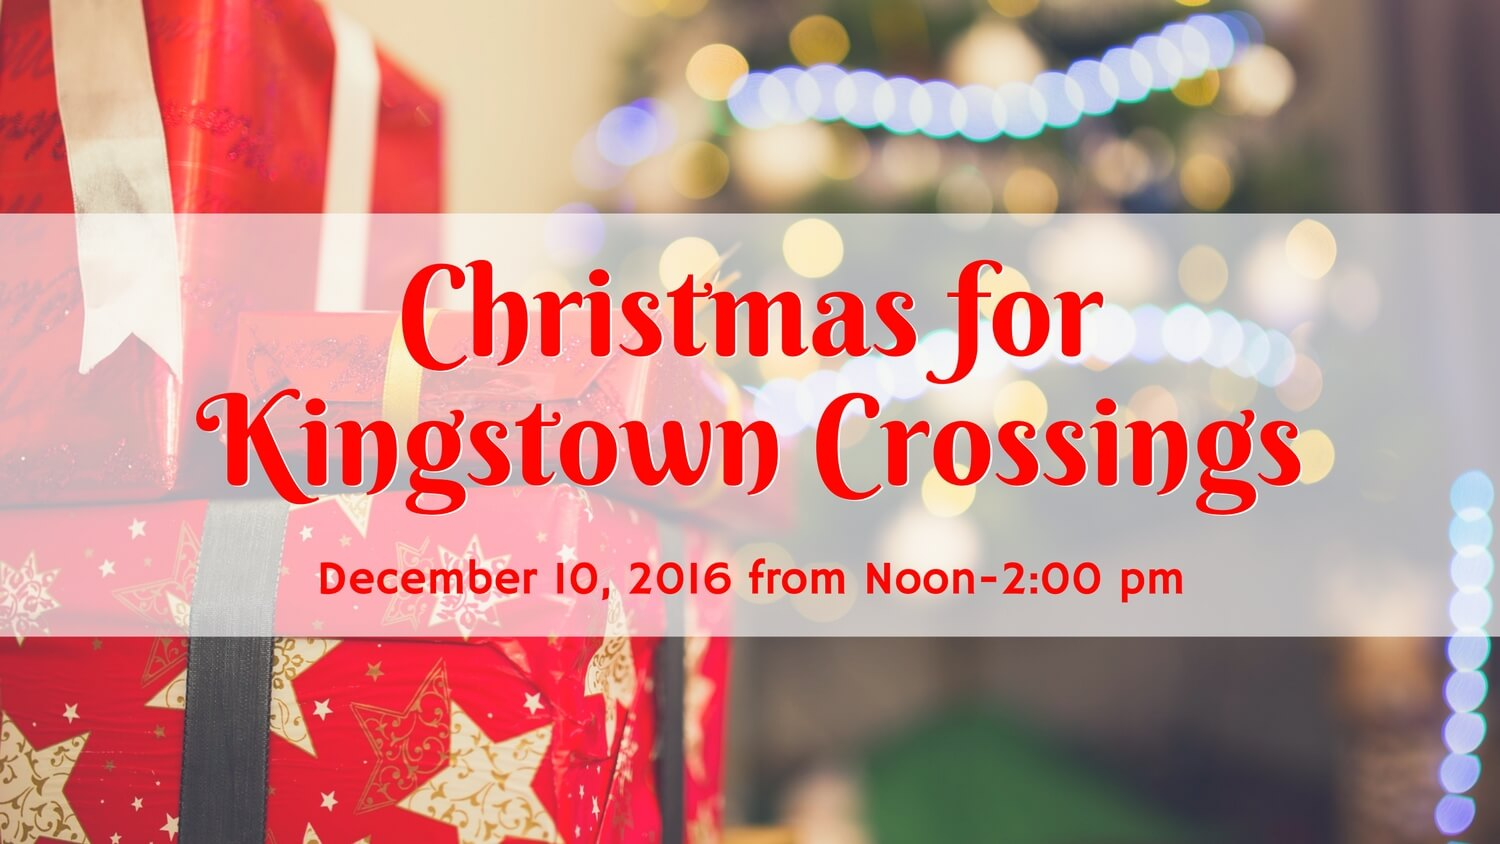 Christmas-for-kingstown-crossings-north-kingstown-ri